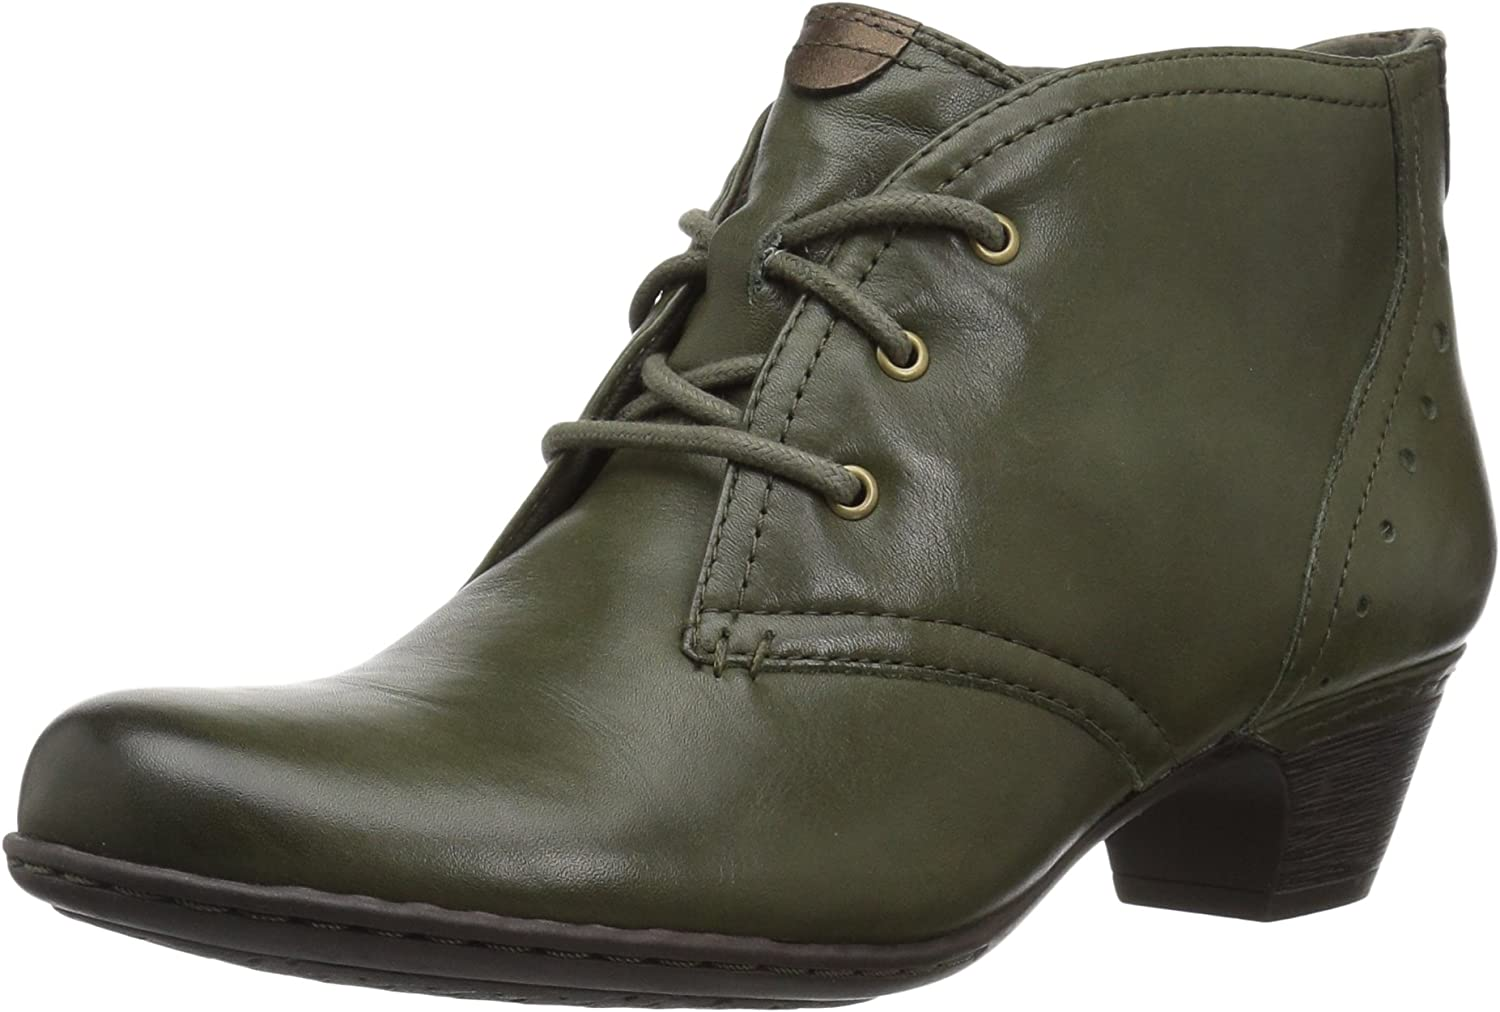 Rockport Womens Cobb Hill Aria Ankle Bootie